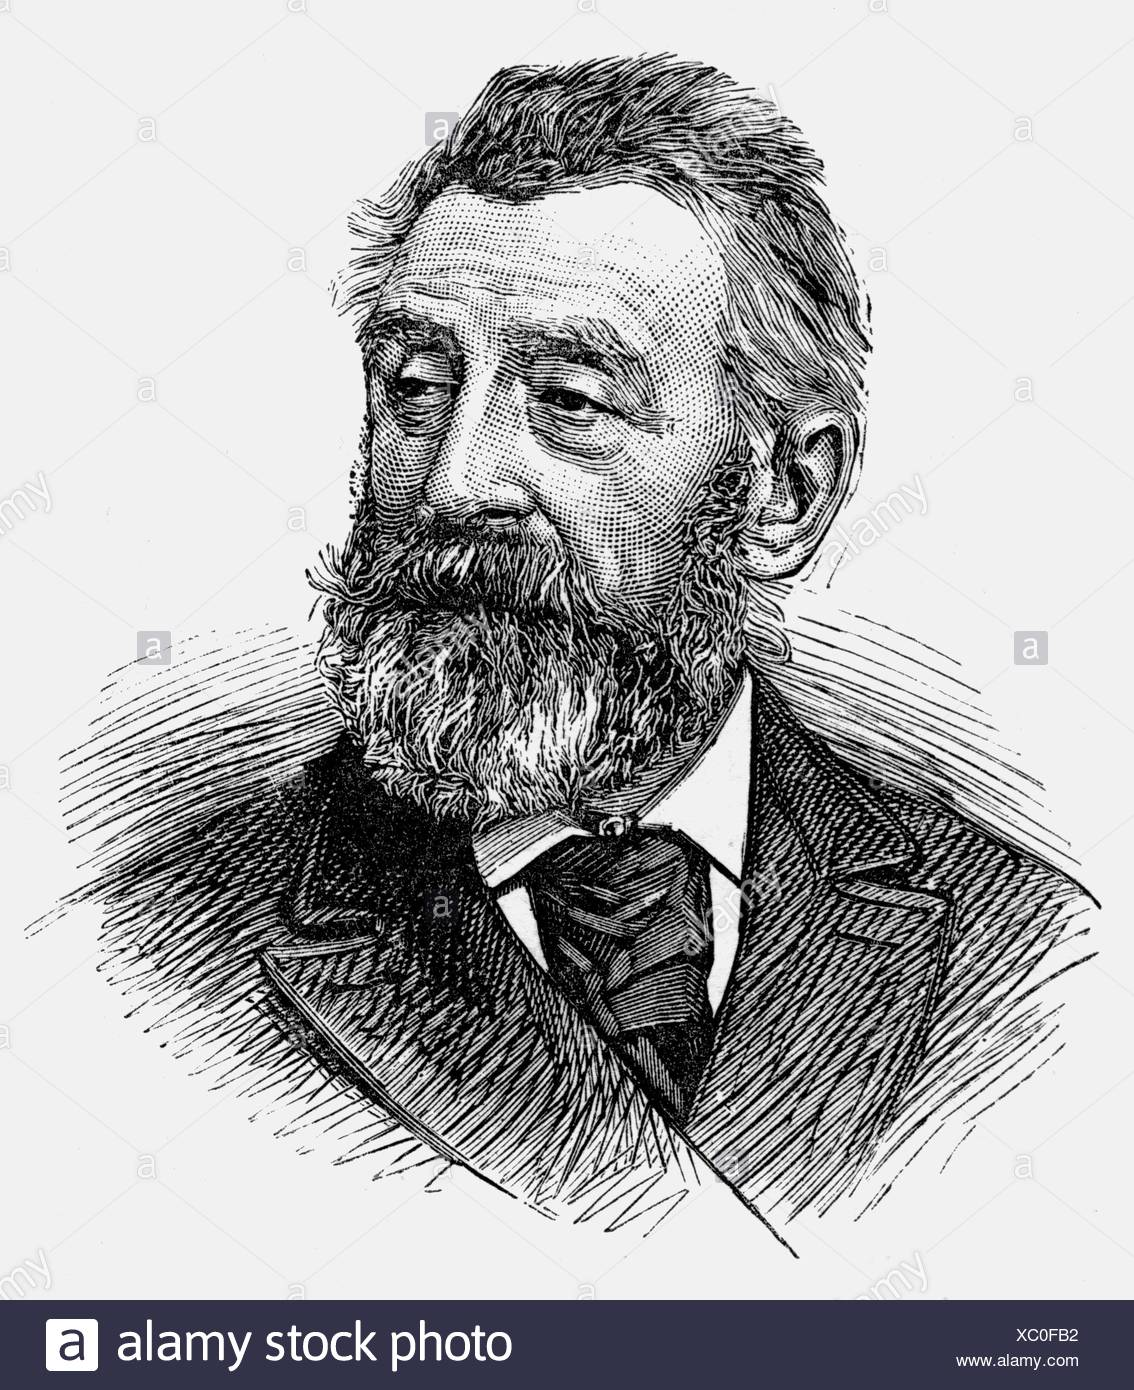 Harpignies, Henry, 28.7.1819 - 28.8.1916, French painter, portrait, wood engraving, Additional-Rights-Clearances-NA - Stock Image